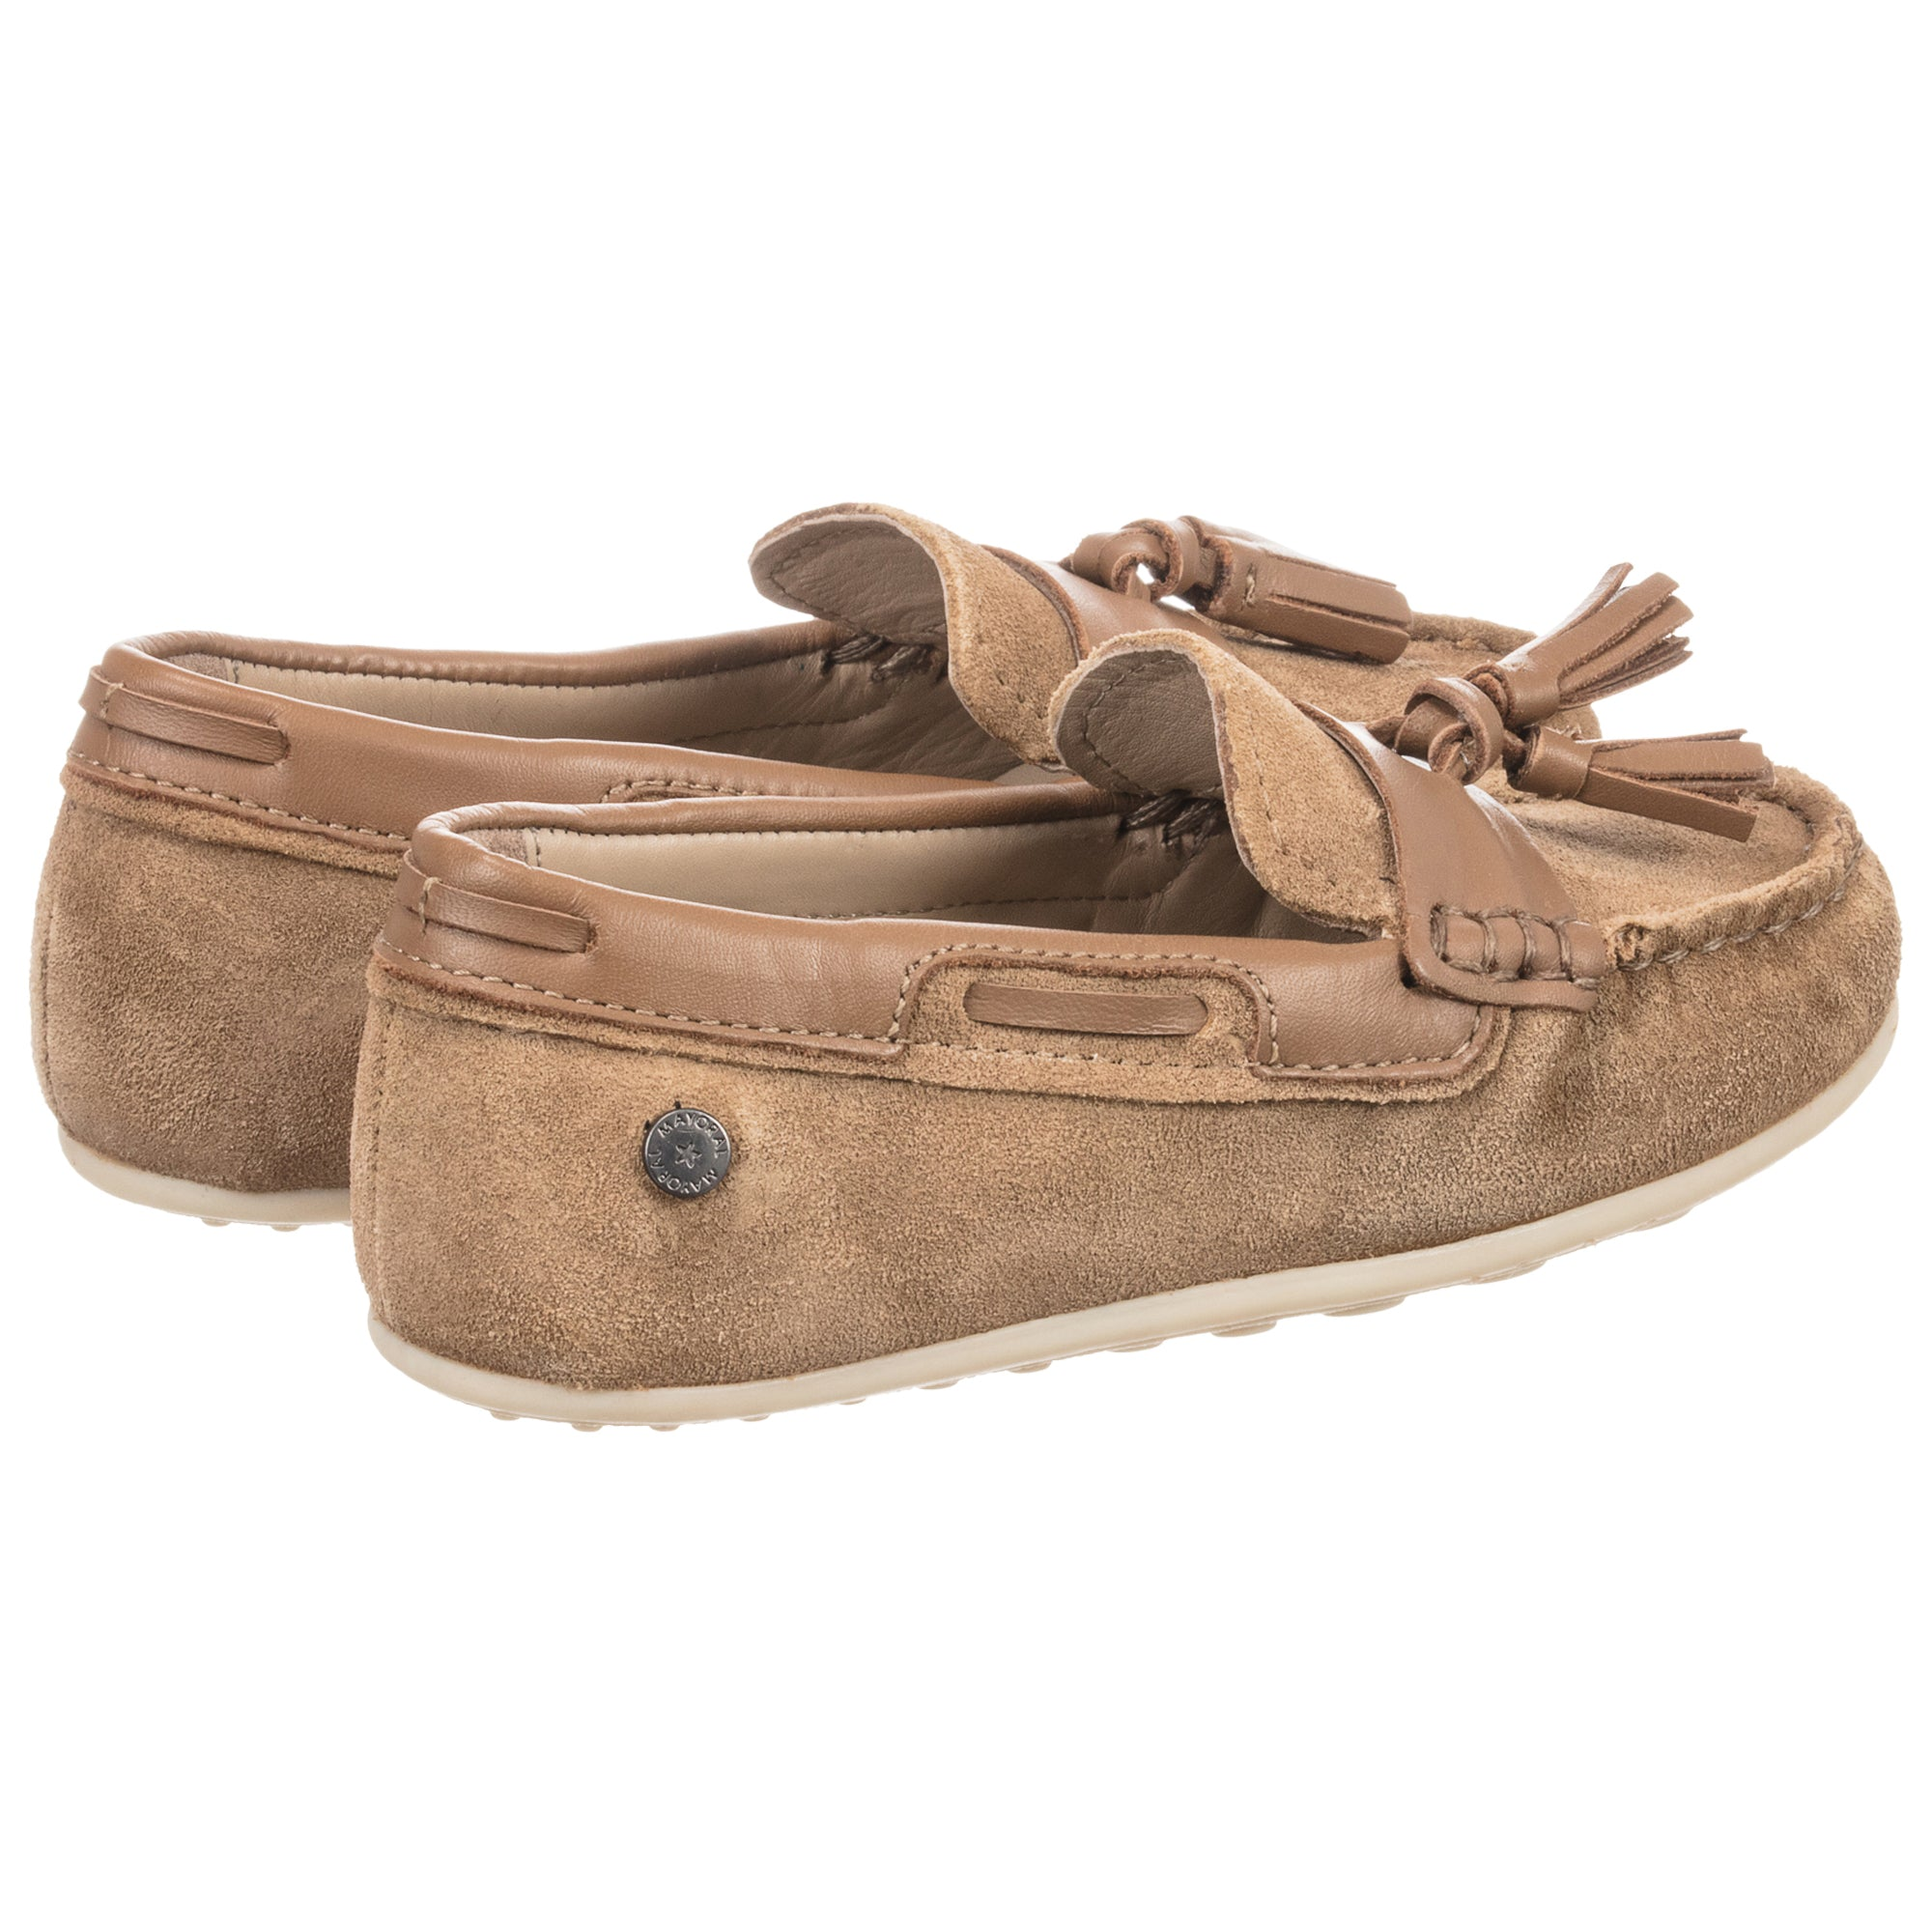 bad4dd07a14 Mayoral suede leather moccasins for boy – Vera   Alex